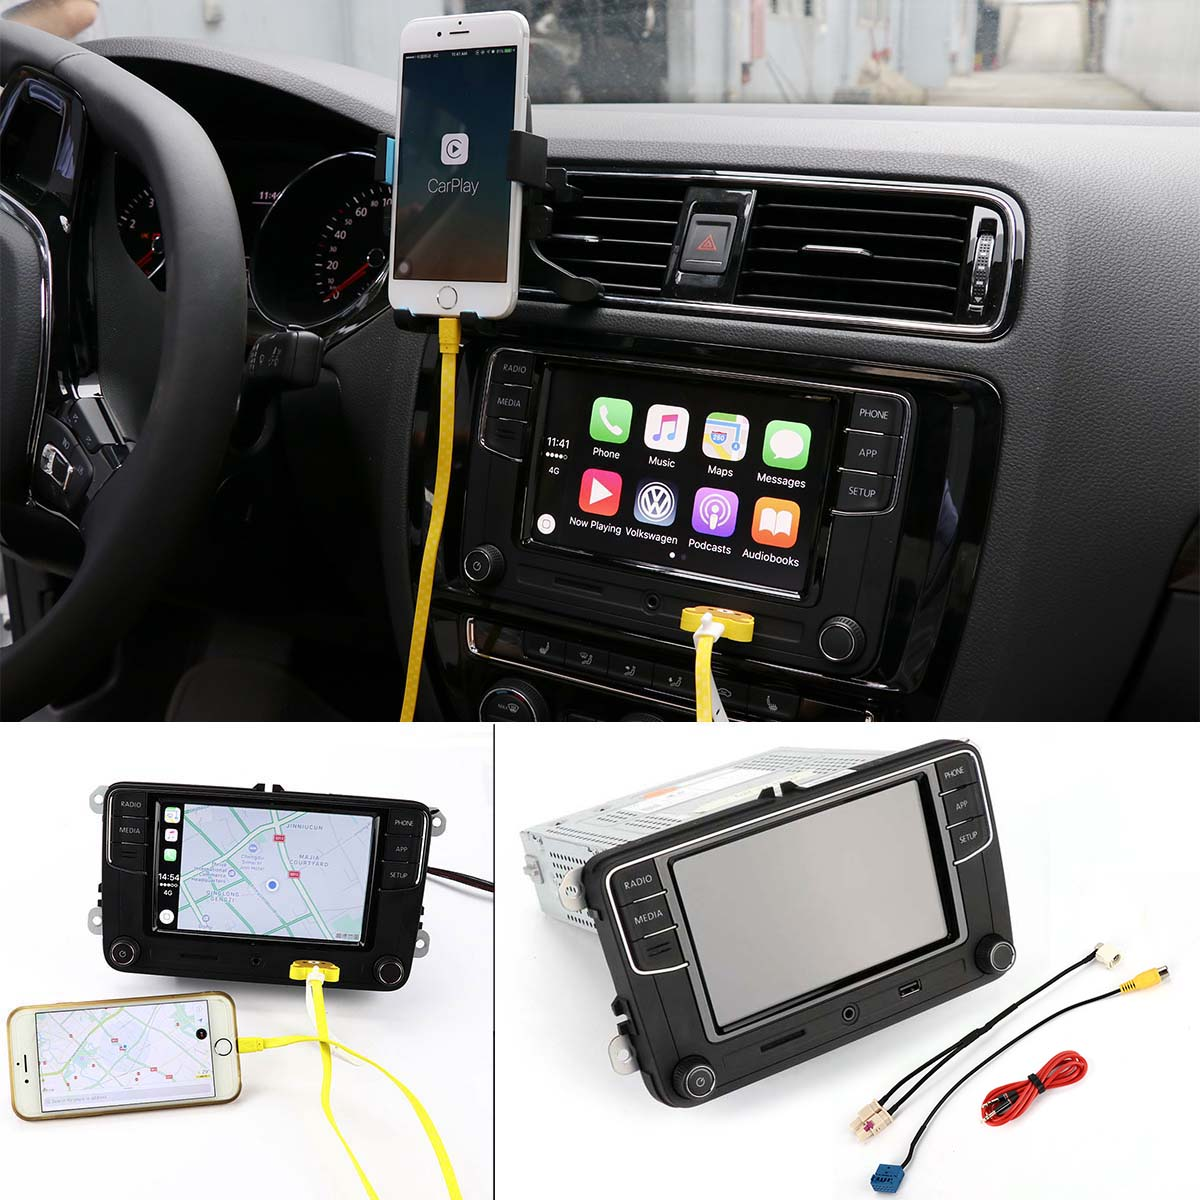 New 6.5 MIB Original CarPlay RCD330 Plus Car MIB Radio Mirrorlink for Volkswagen VW w/Cable 6RD 035 187 B Version B fyh winter kids clothing boys jackets fur collar kids warm parka children s thick outerwear coat kids down jacket cotton padded